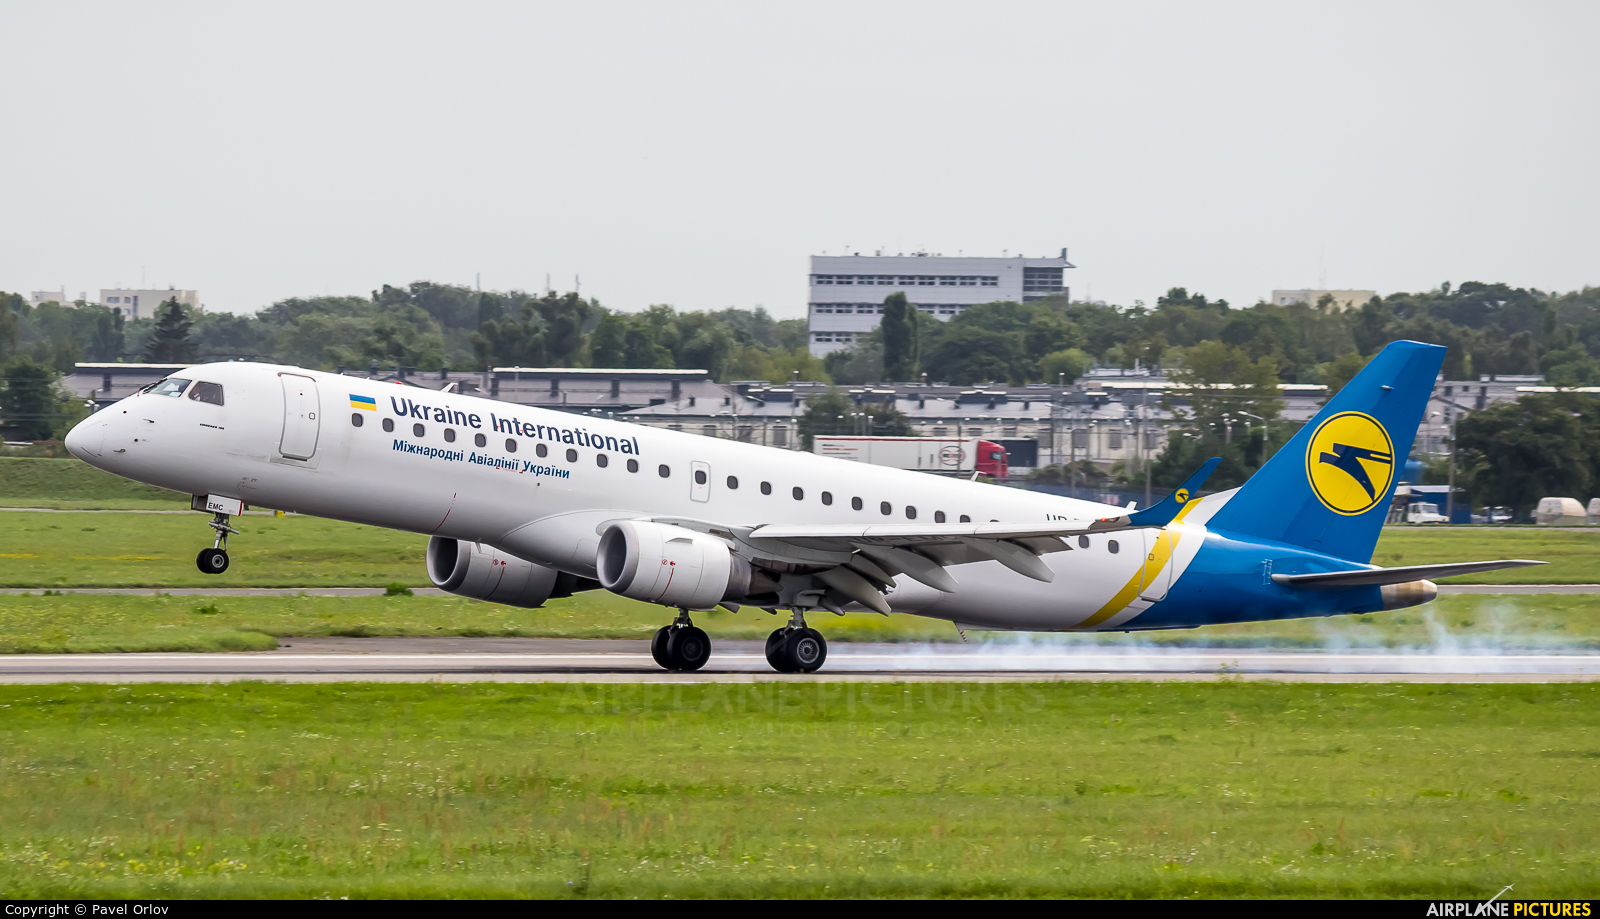 Ukraine International Airlines UR-EMC aircraft at Warsaw - Frederic Chopin